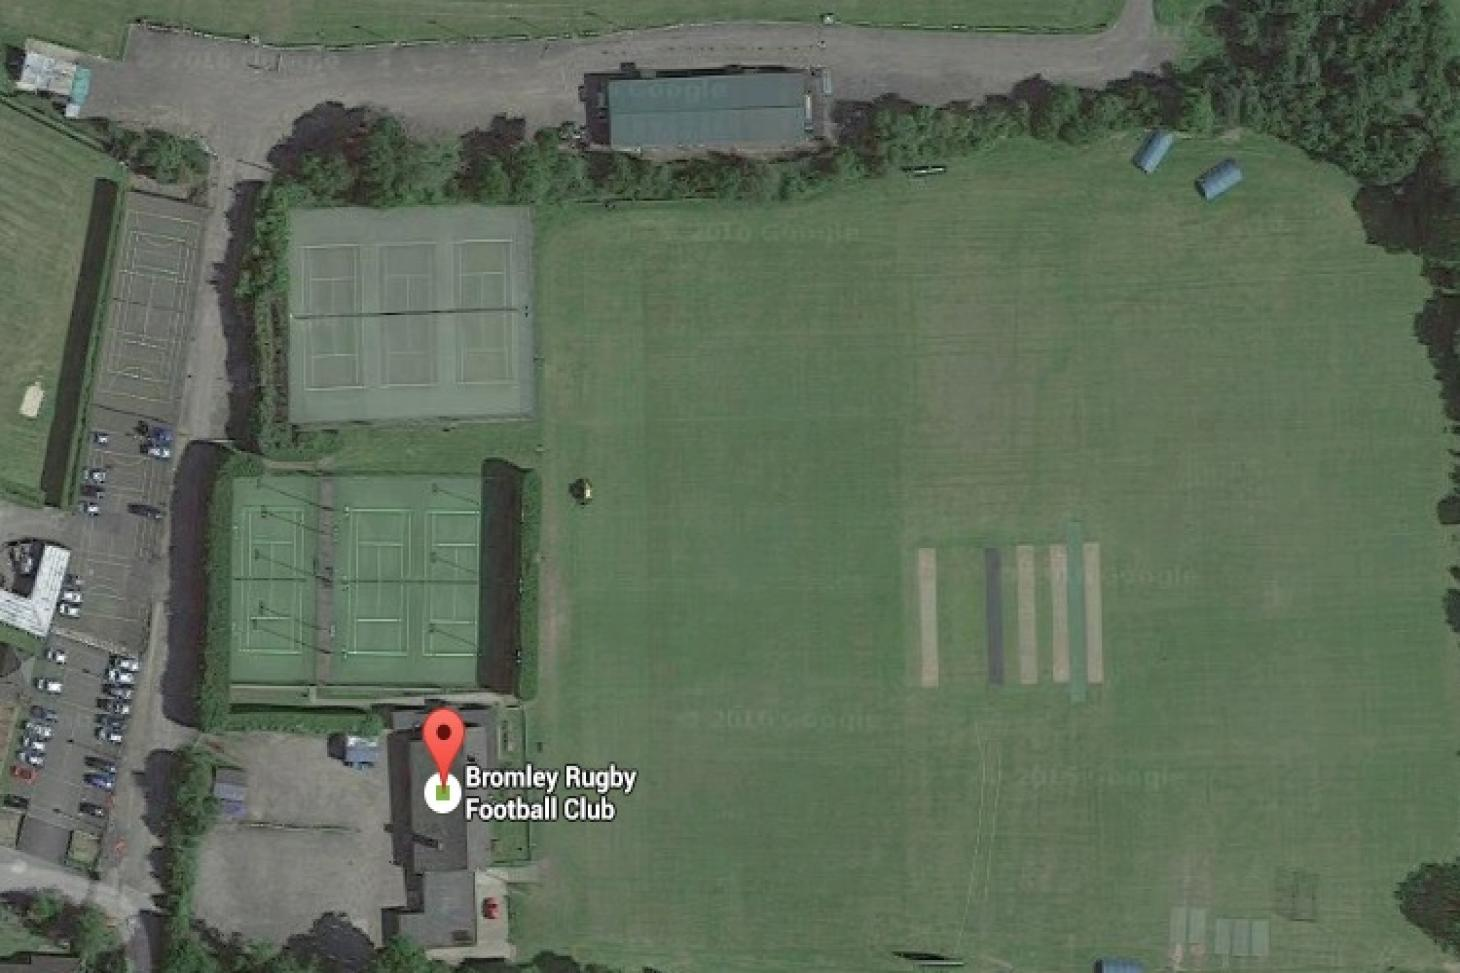 Bromley Rugby Football Club 11 a side | Grass football pitch